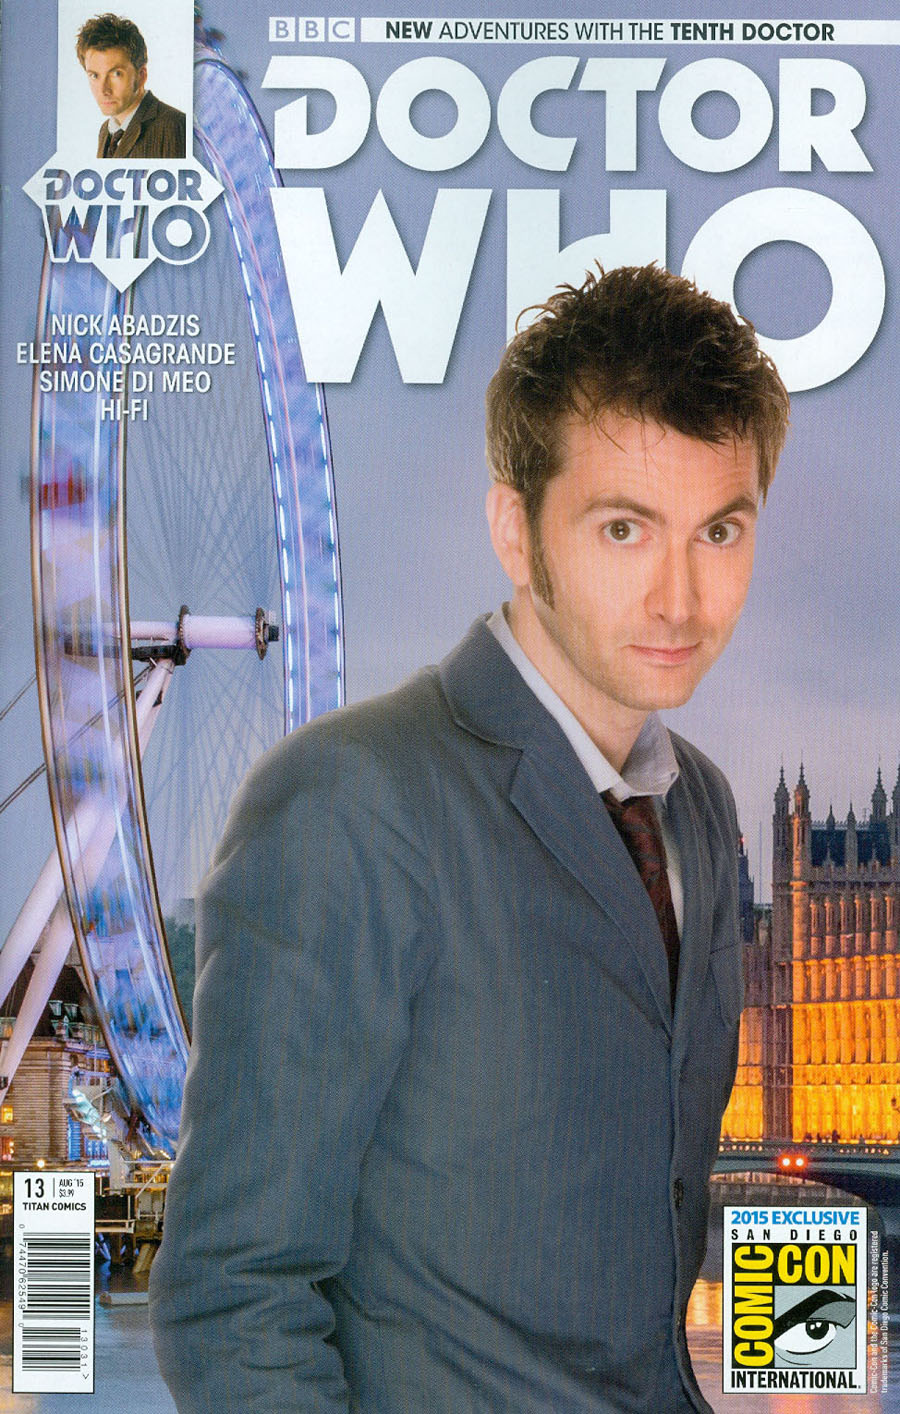 Doctor Who 10th Doctor #13 Cover C SDCC 2015 Exclusive Photo Variant Cover